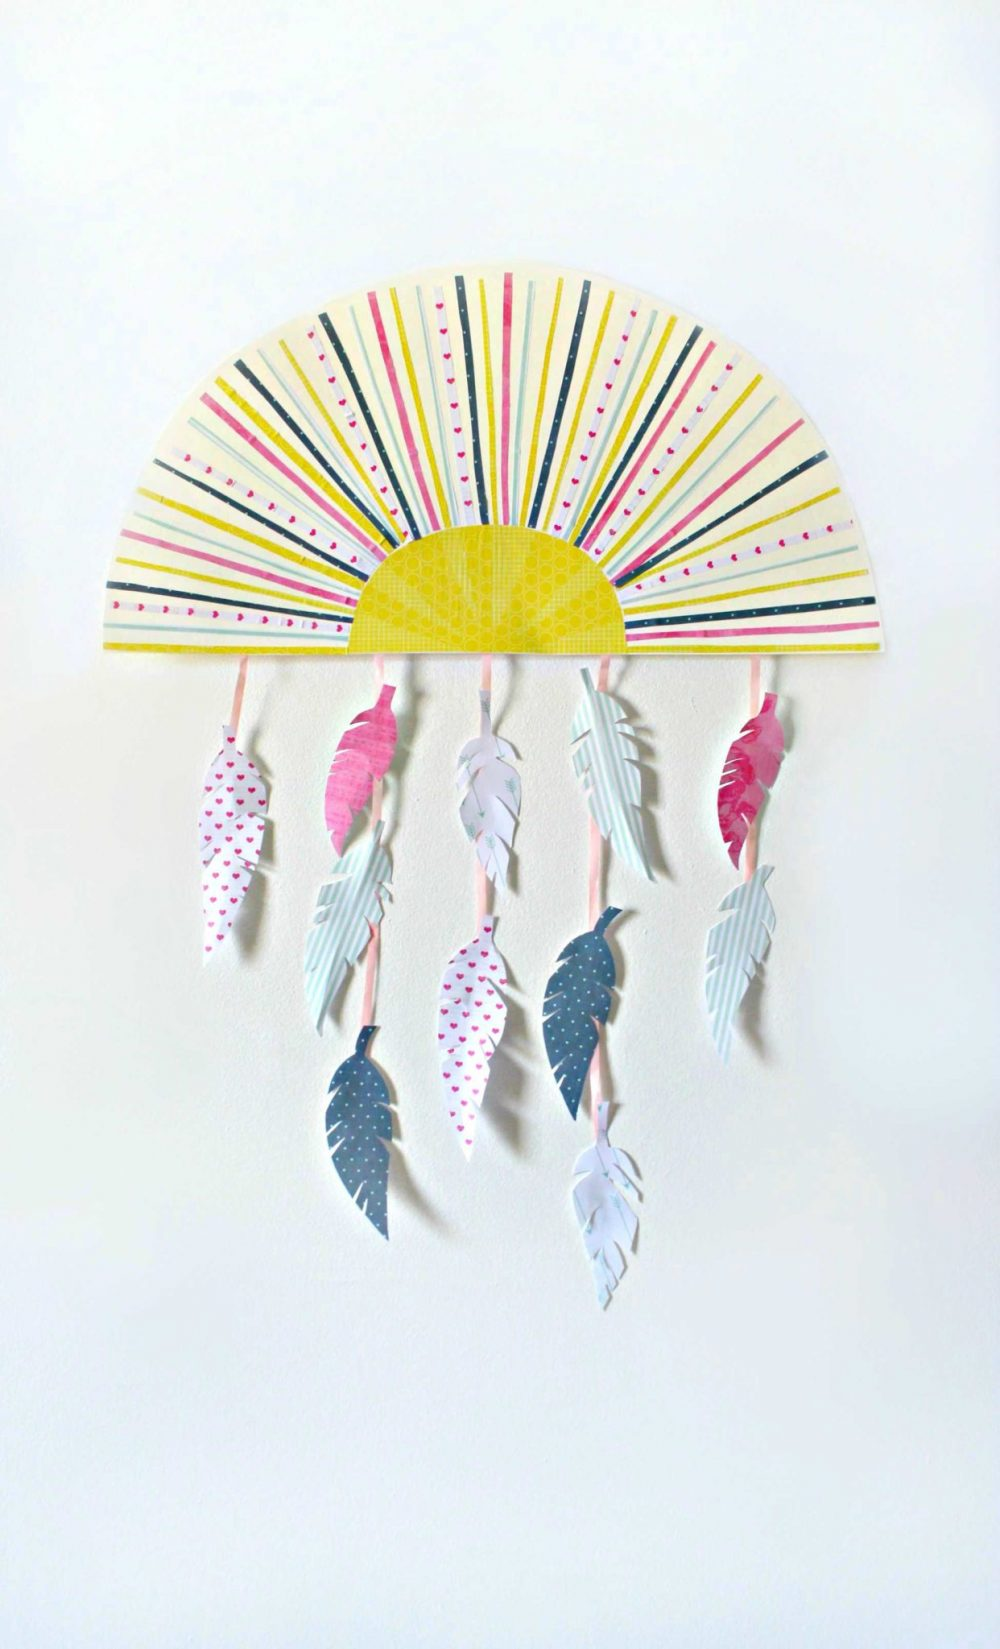 Feather wall decor in the shape of a half sun with hanging feathers